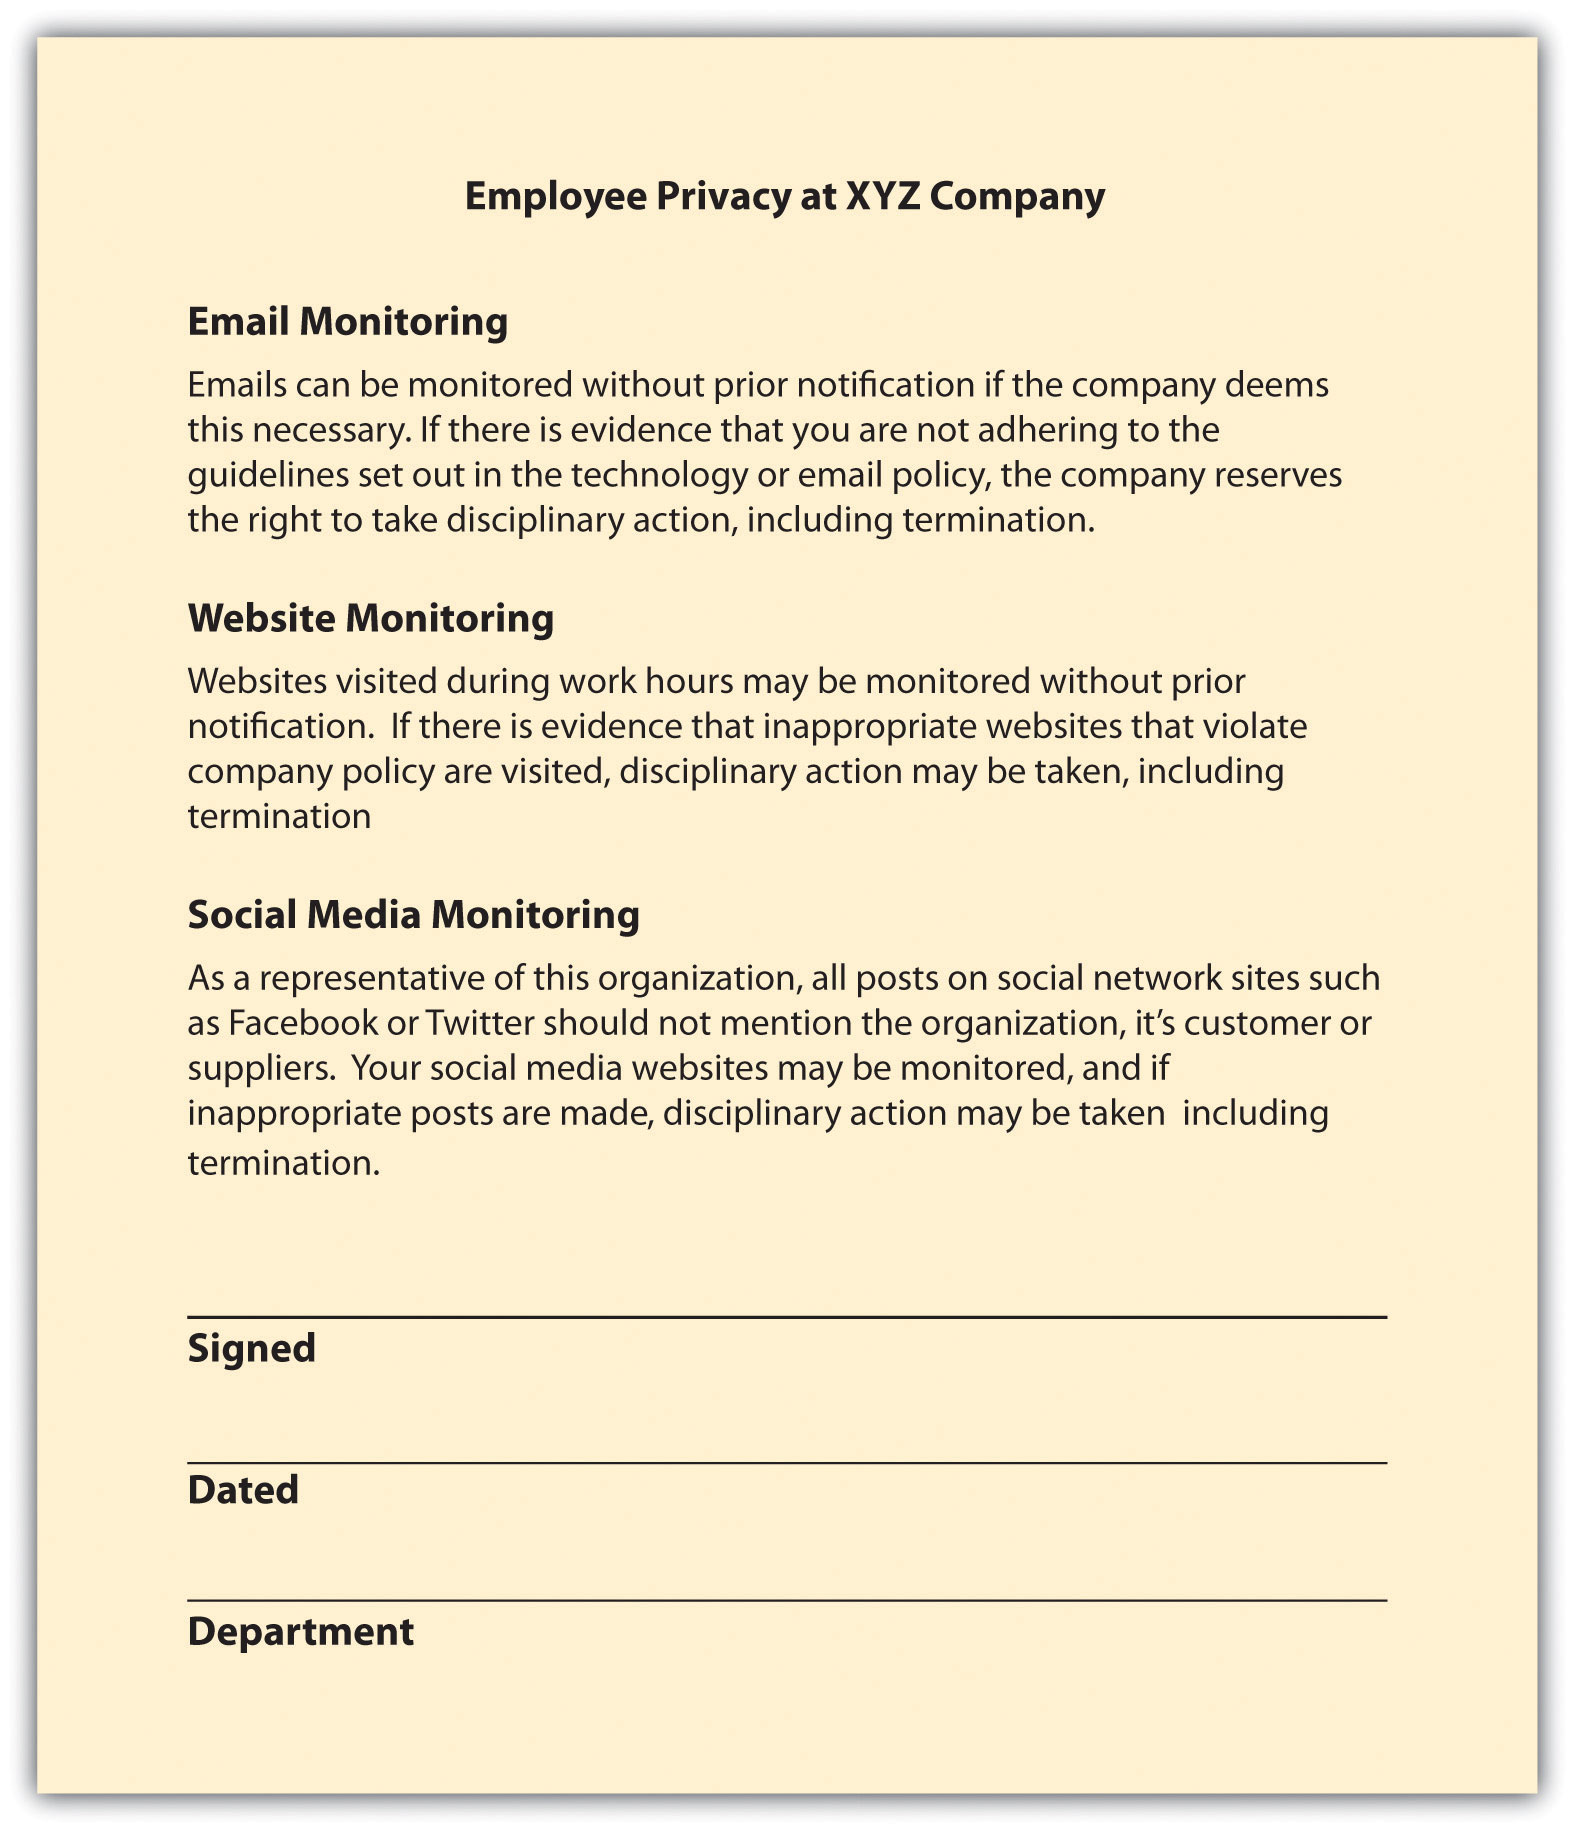 company email policy template - human resource management 1 0 flatworld